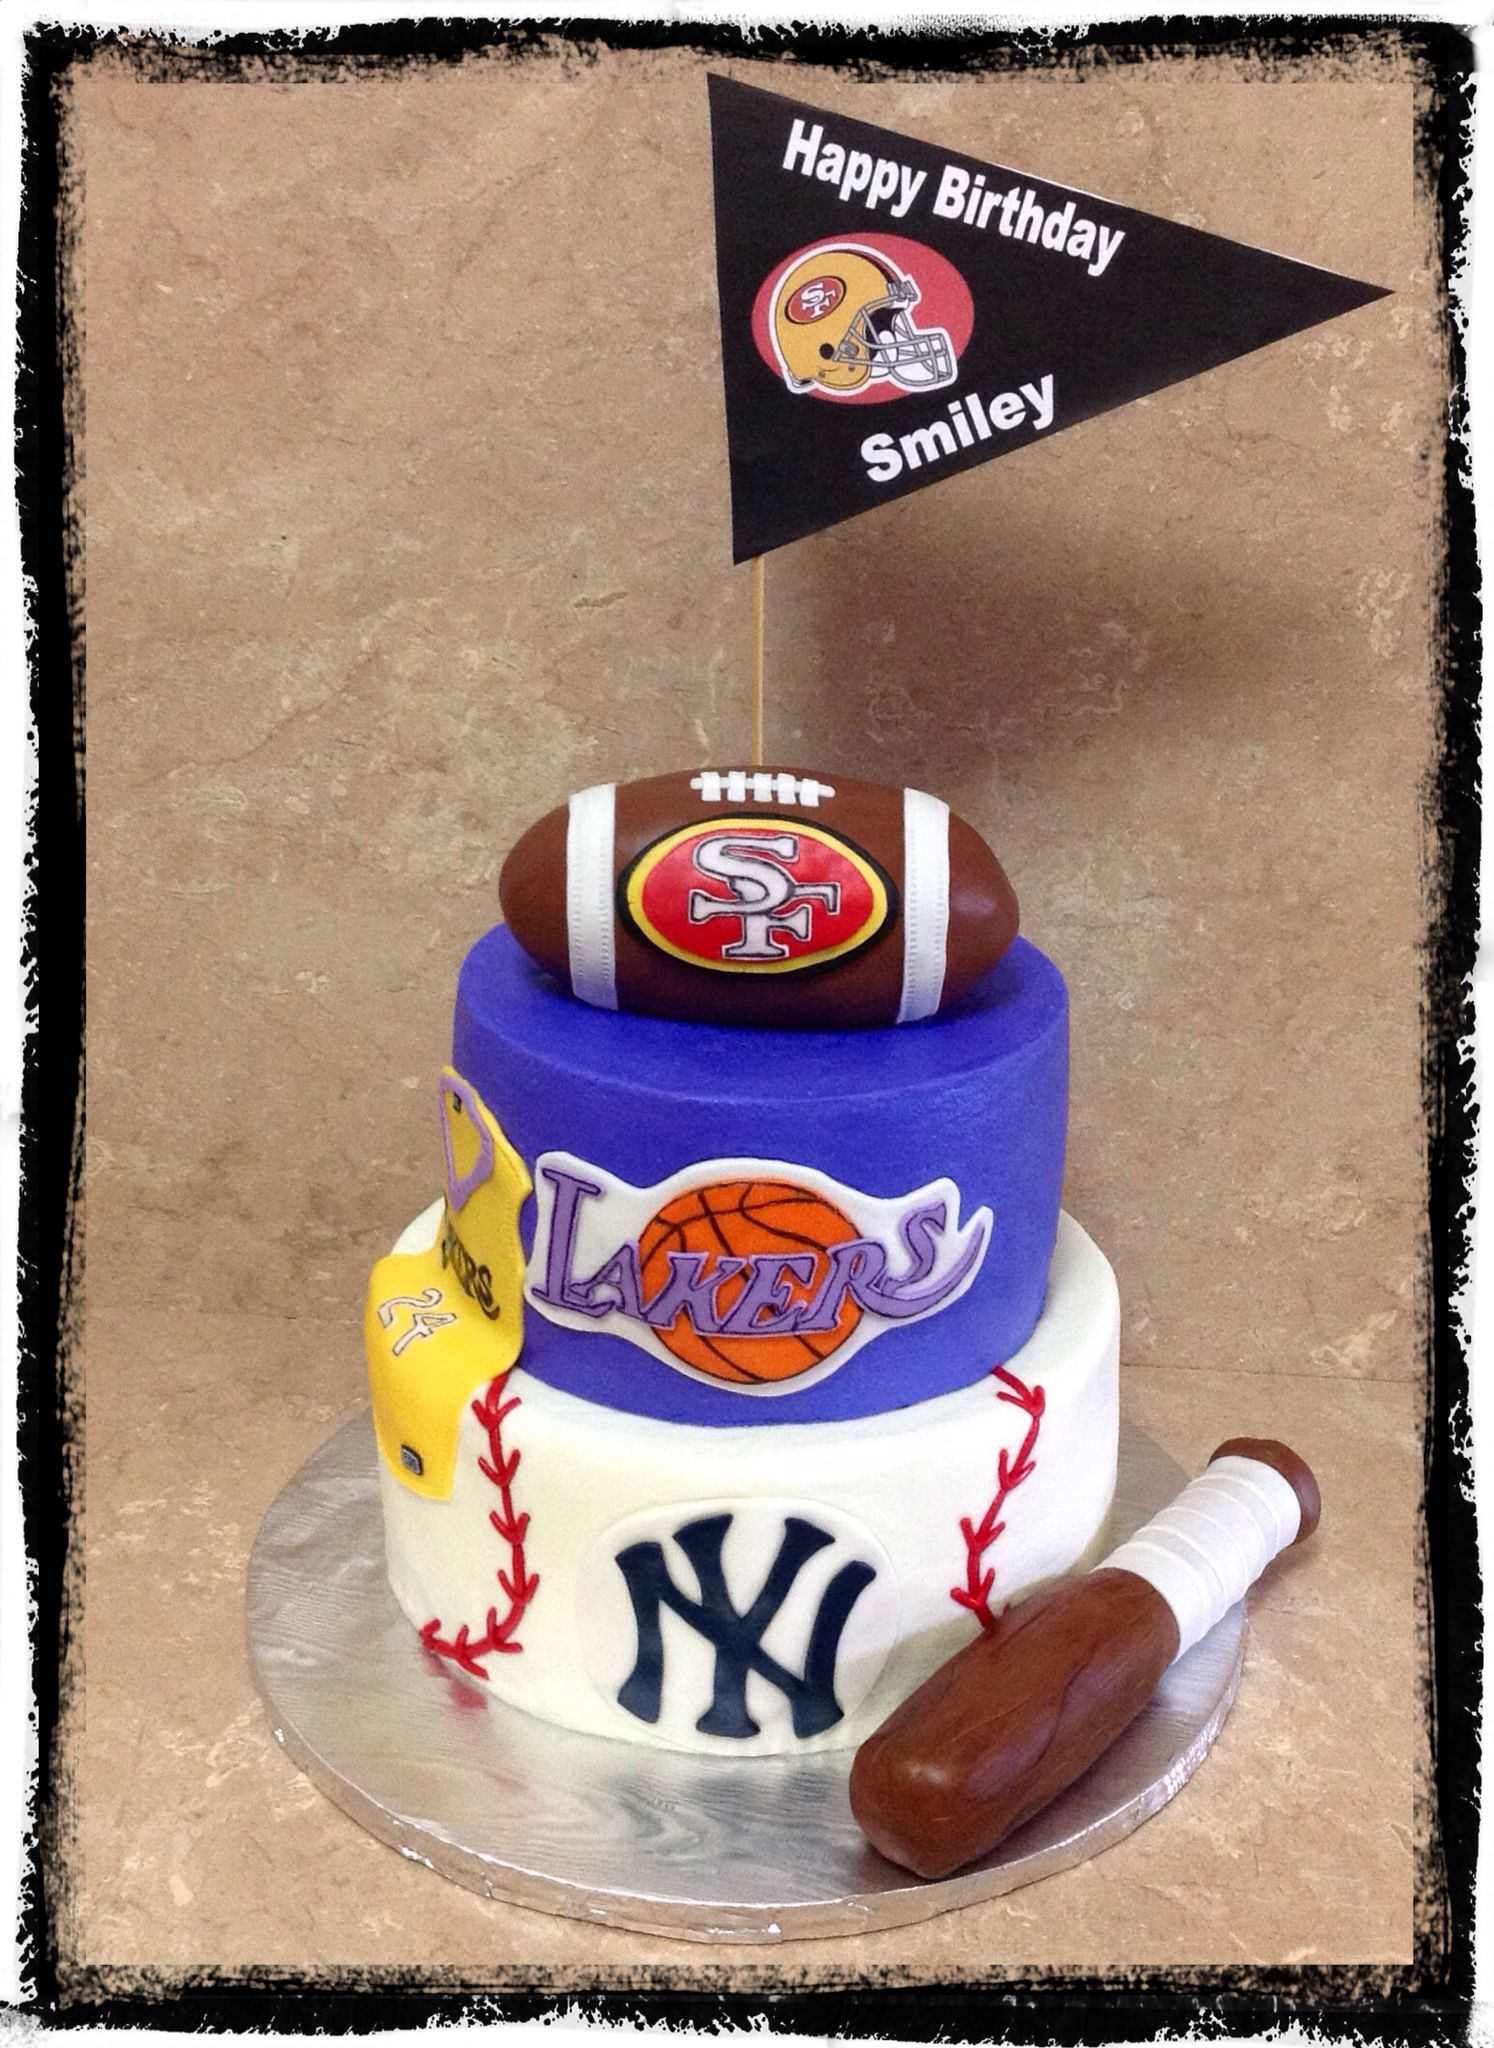 Sports Theme Birthday Cake....49ers, Lakers & Yankees